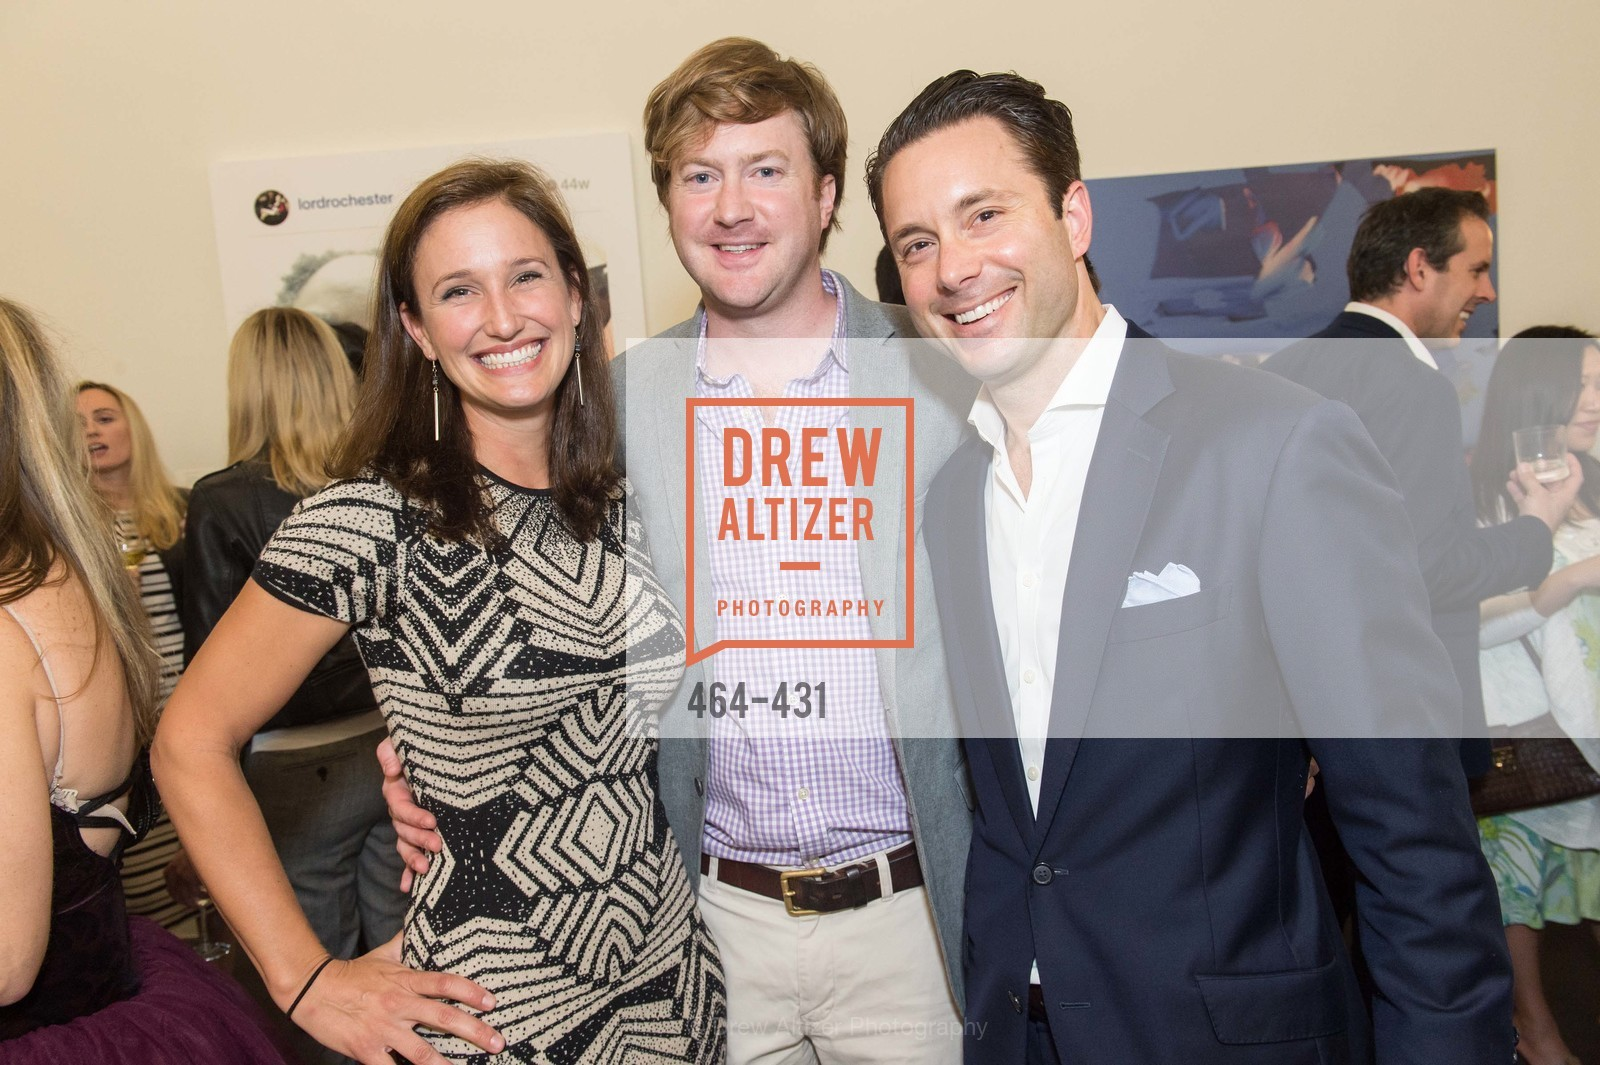 Allison Twiss, William Ralph, Noah Lewis, Artsy + Sotheby's Closing Party, Fused. 1401 16th Street, October 30th, 2015,Drew Altizer, Drew Altizer Photography, full-service agency, private events, San Francisco photographer, photographer california